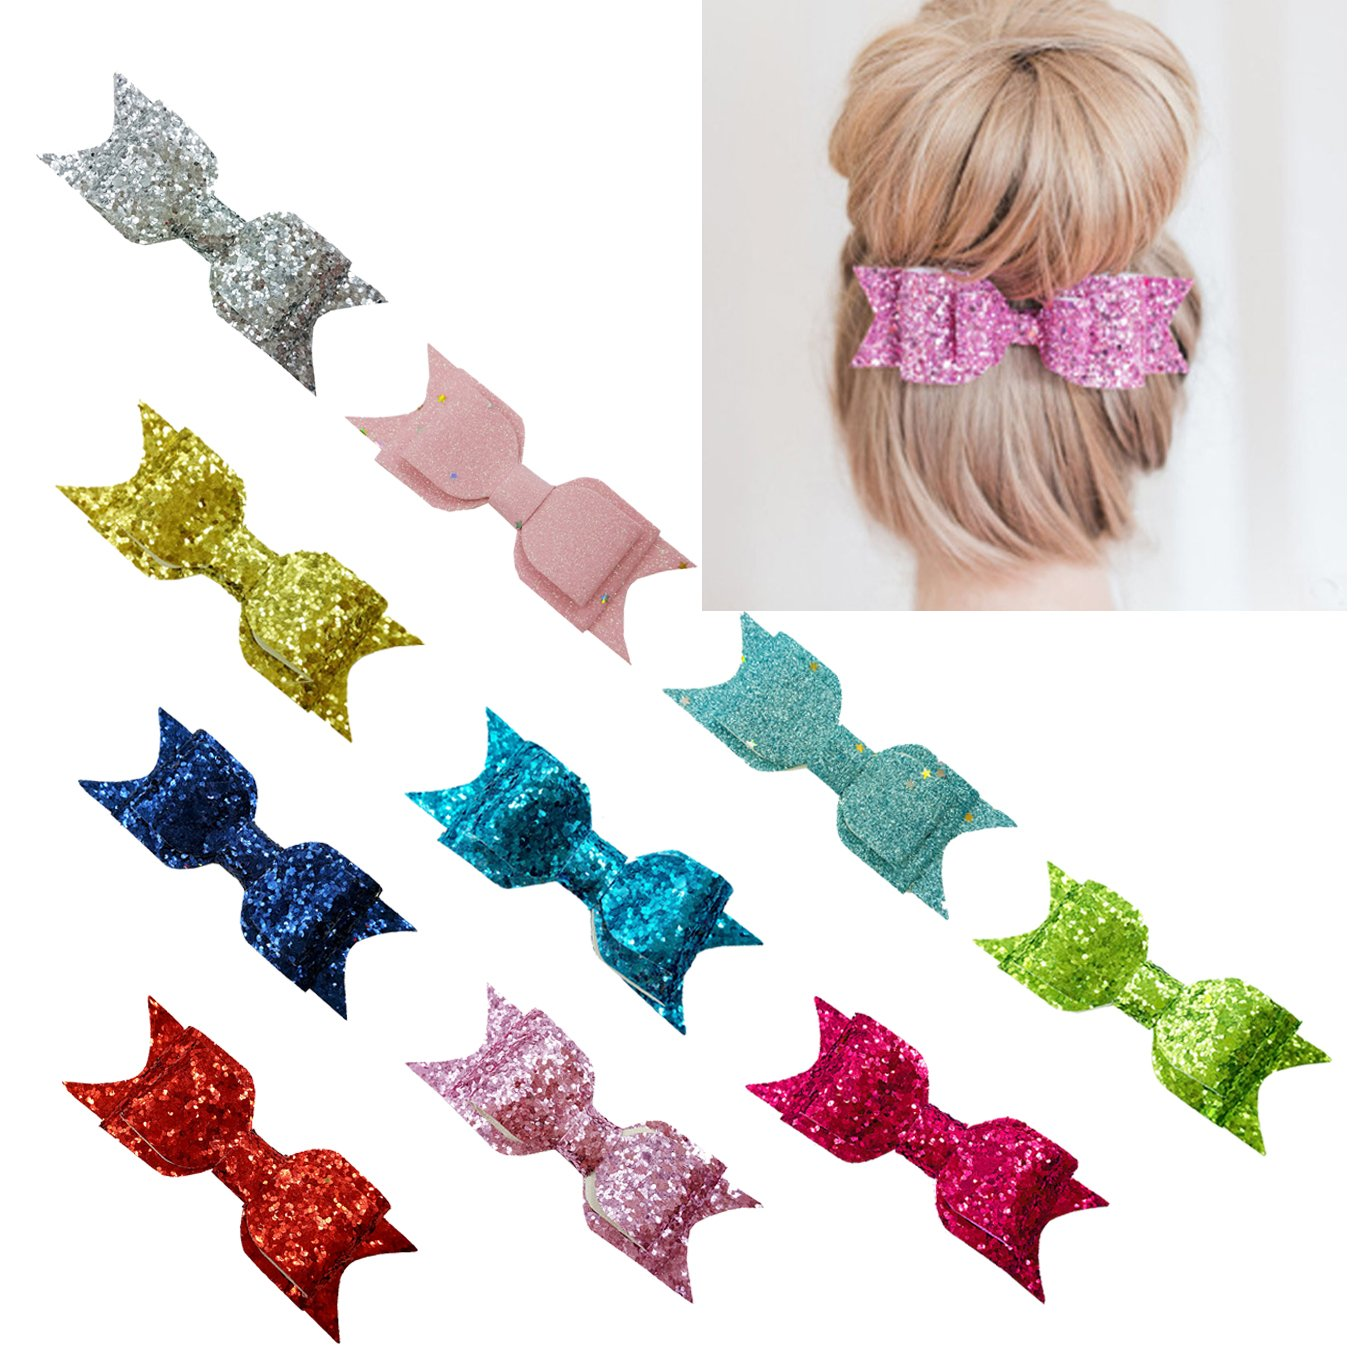 xsby Baby Girls Hair Accessories, 10pcs Sequins hair Bows Clip for baby Girls Hair Accessorie D